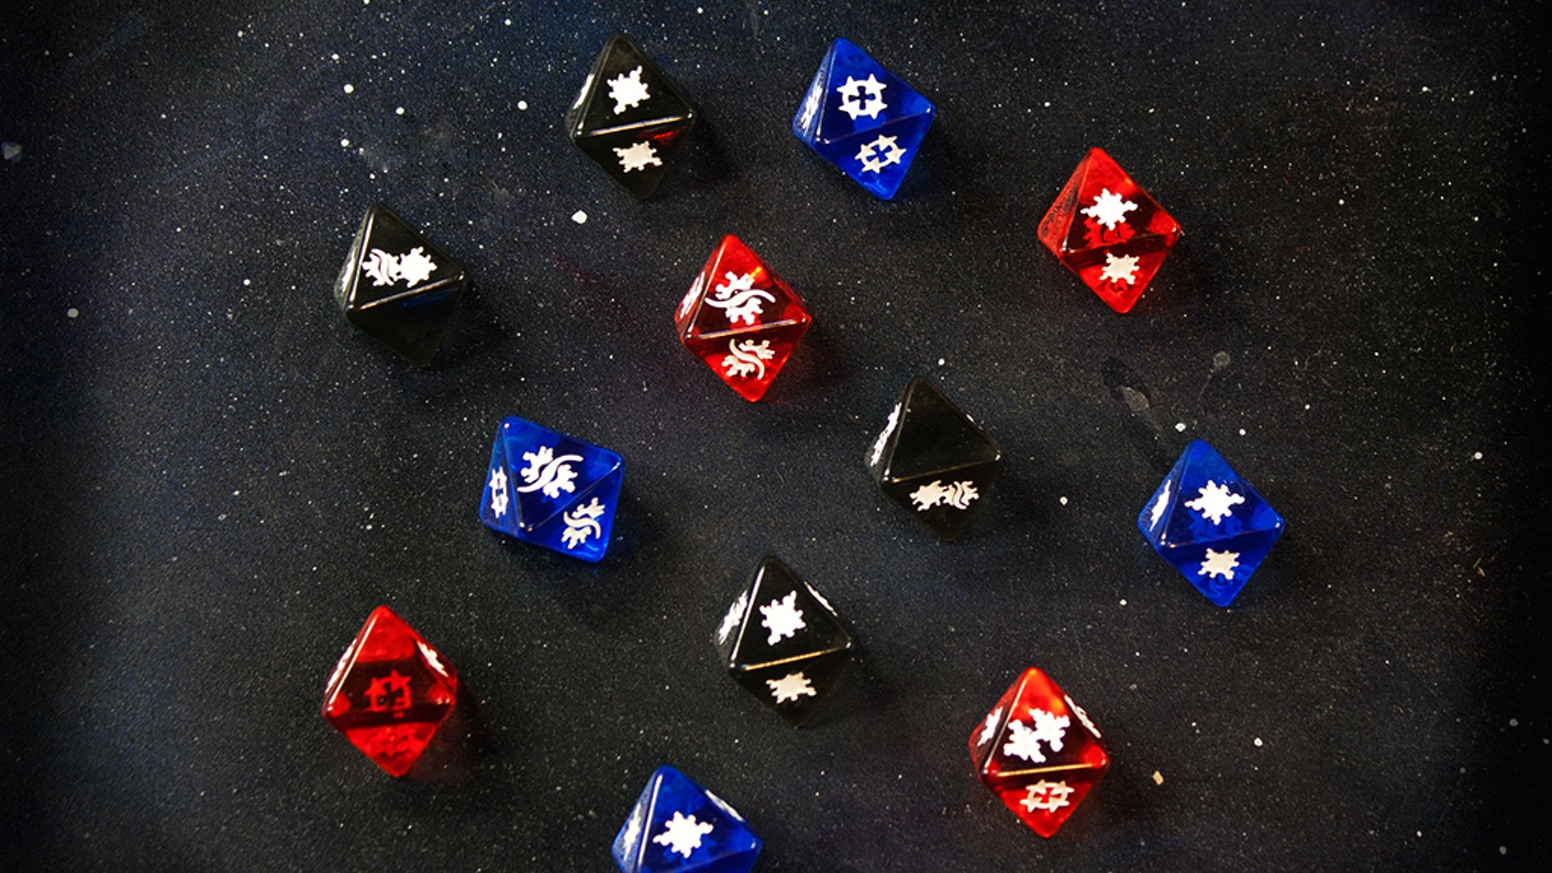 The ultimate power in the Galaxy... now with better dice! Transparent dice compatible with your favorite space battle games!